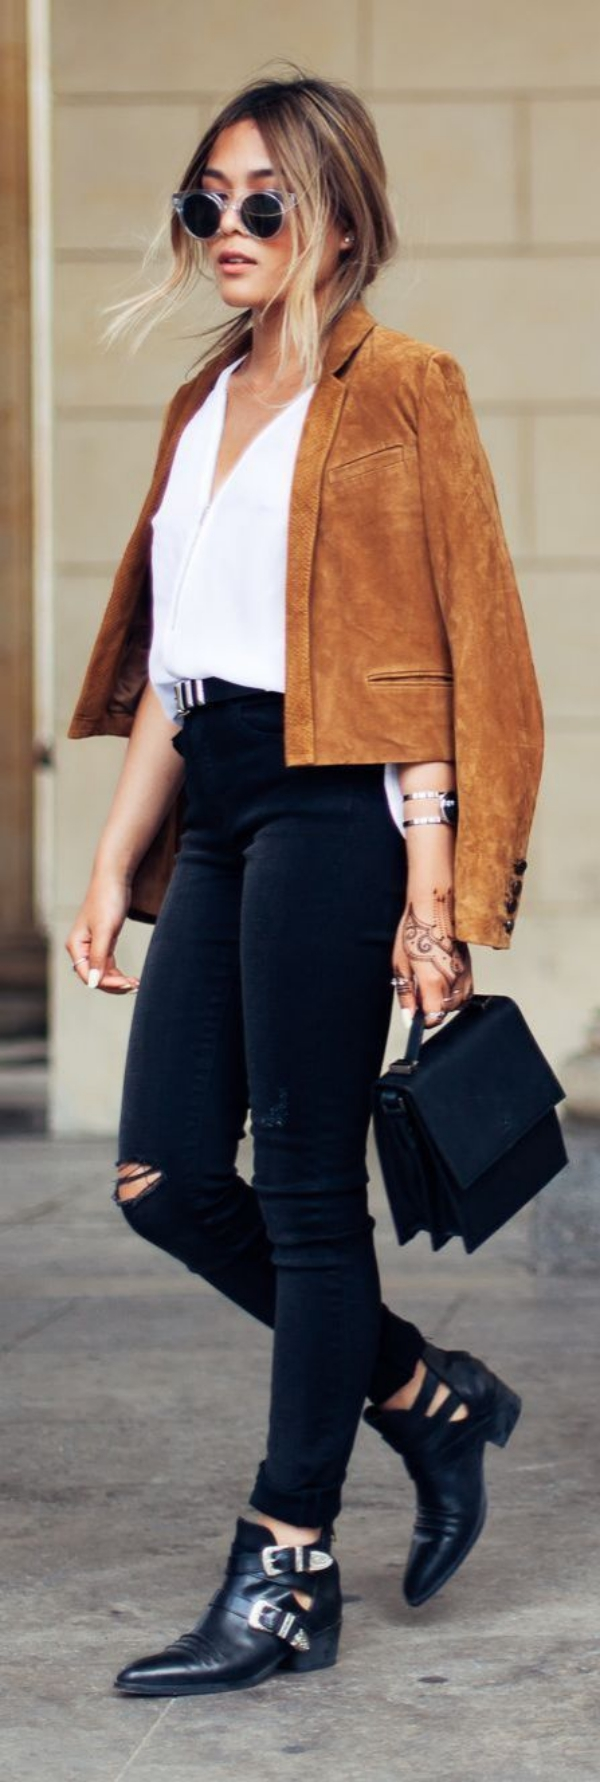 Autumn-Fashion-Outfits-Ideas-28